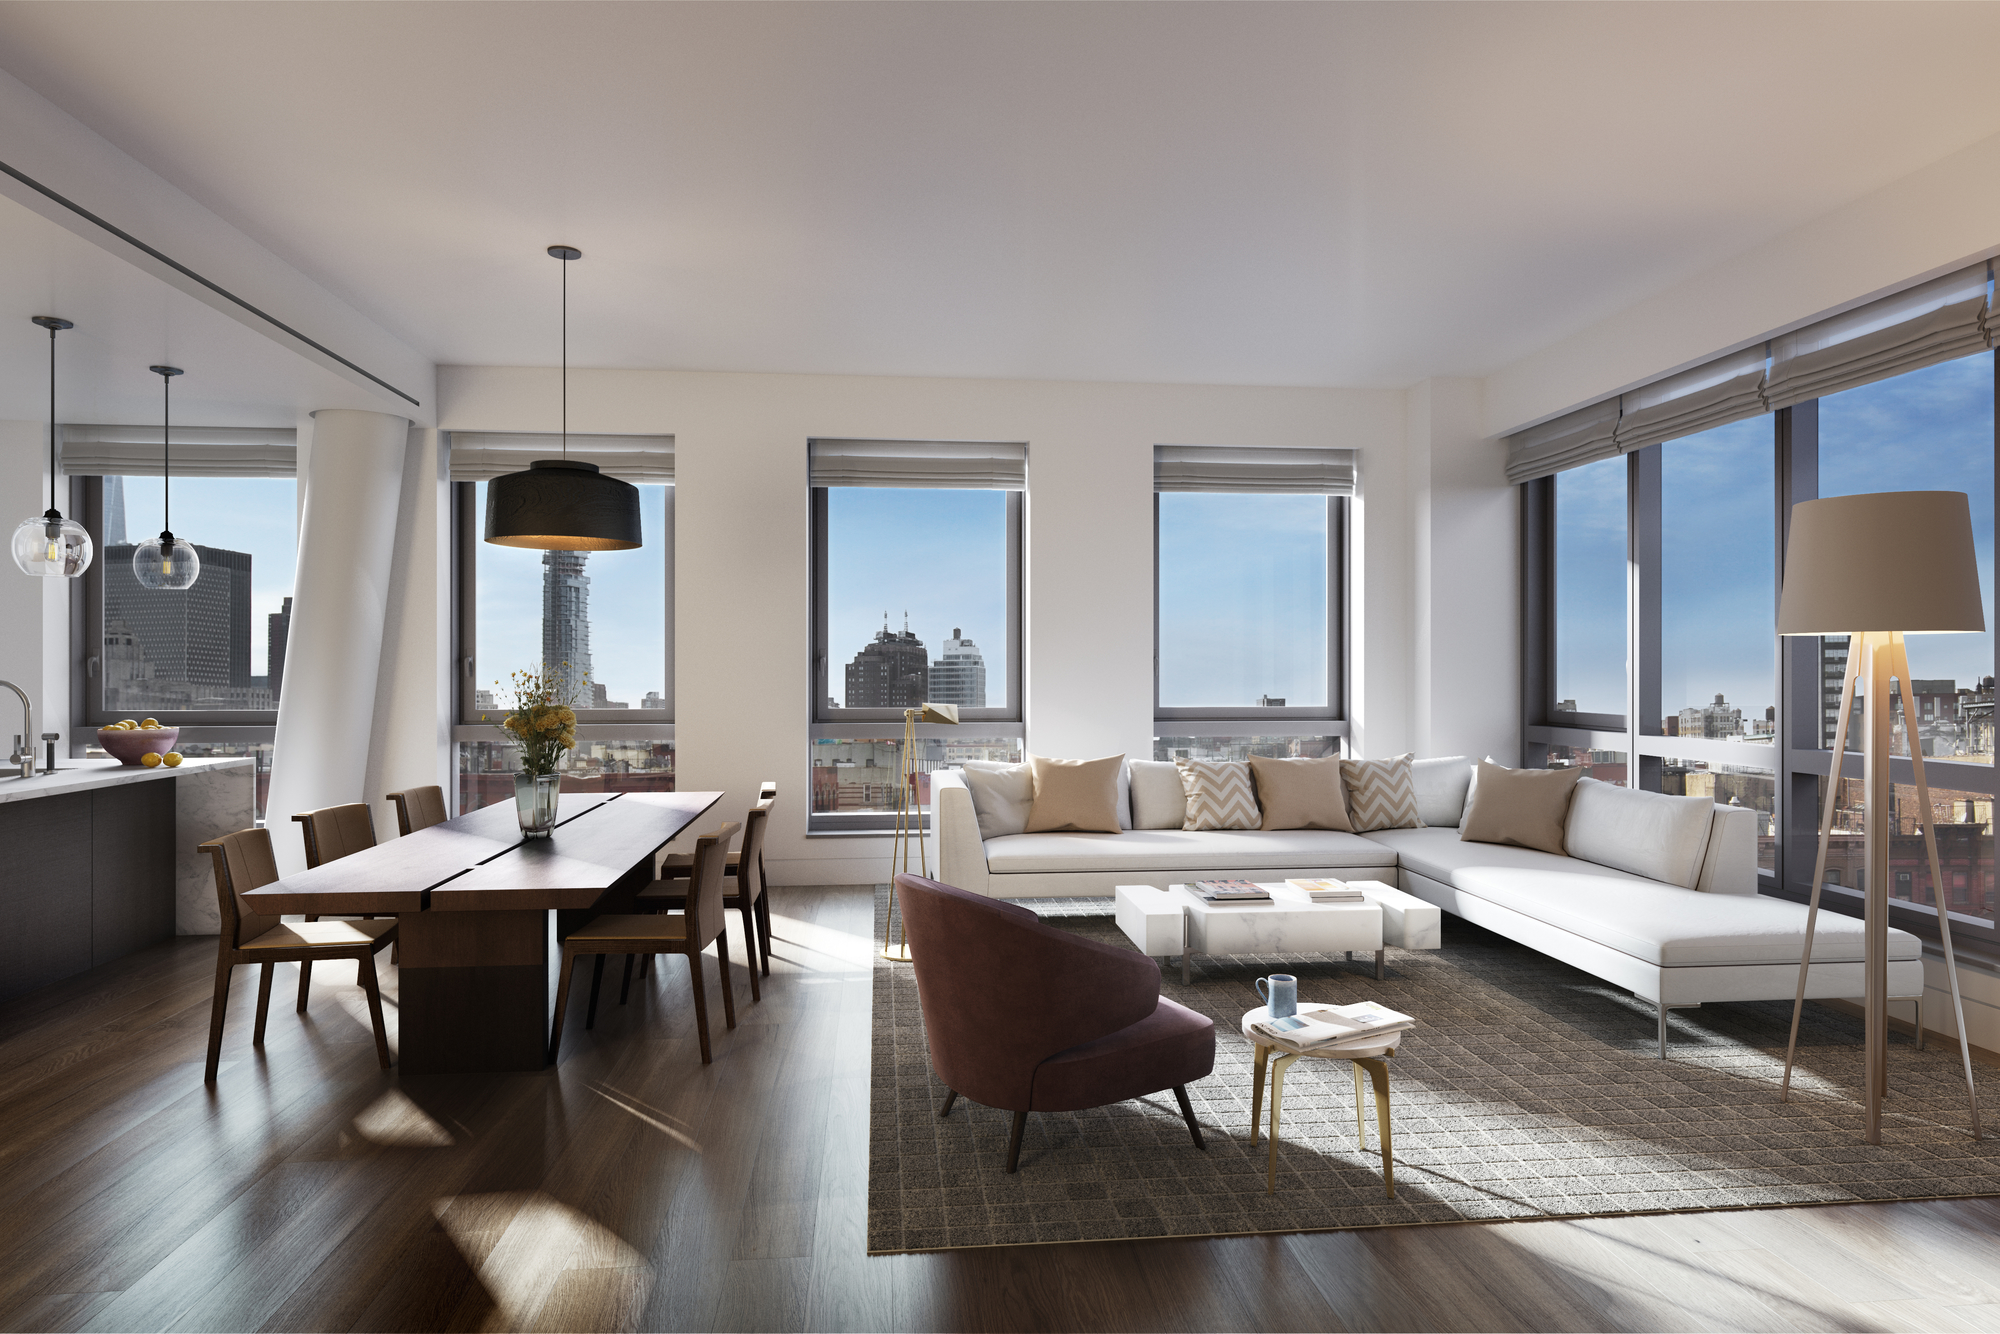 New Renderings For Condos At 242 Broome Street, 14-Story